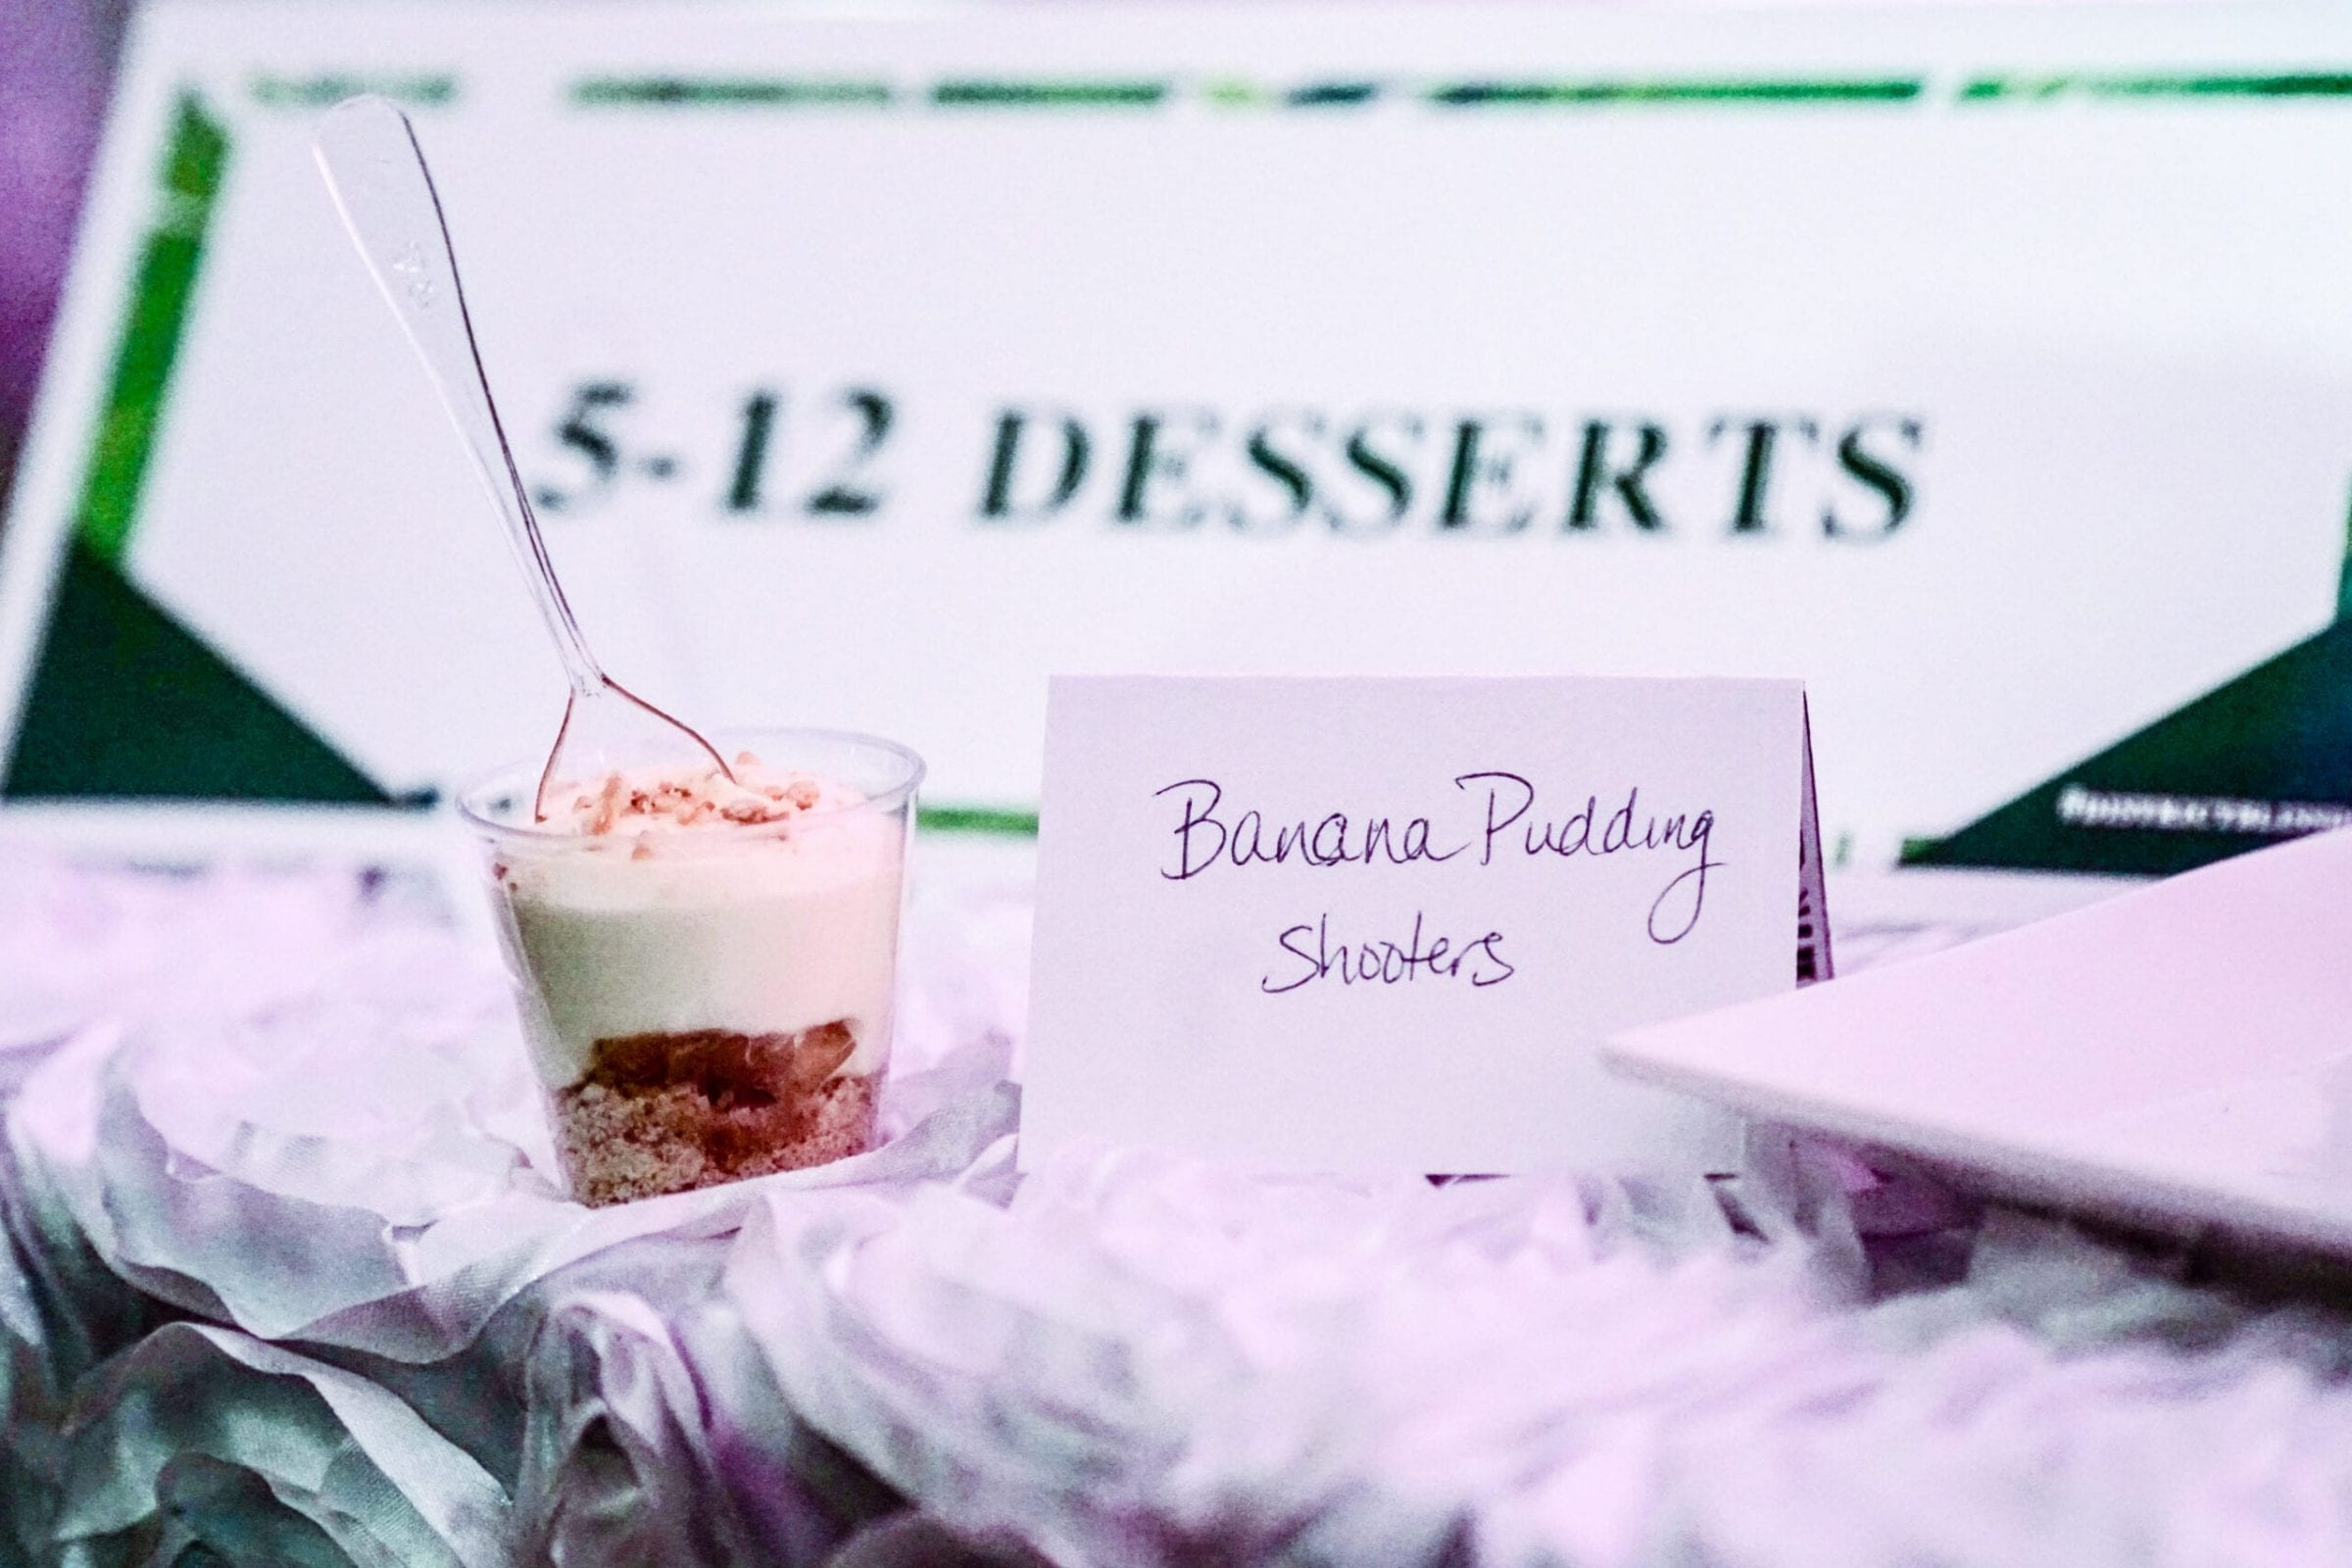 5-12 Dessert created delicious desserts for the District Bliss Vendor Social, a light-hearted, welcoming, casual networking event